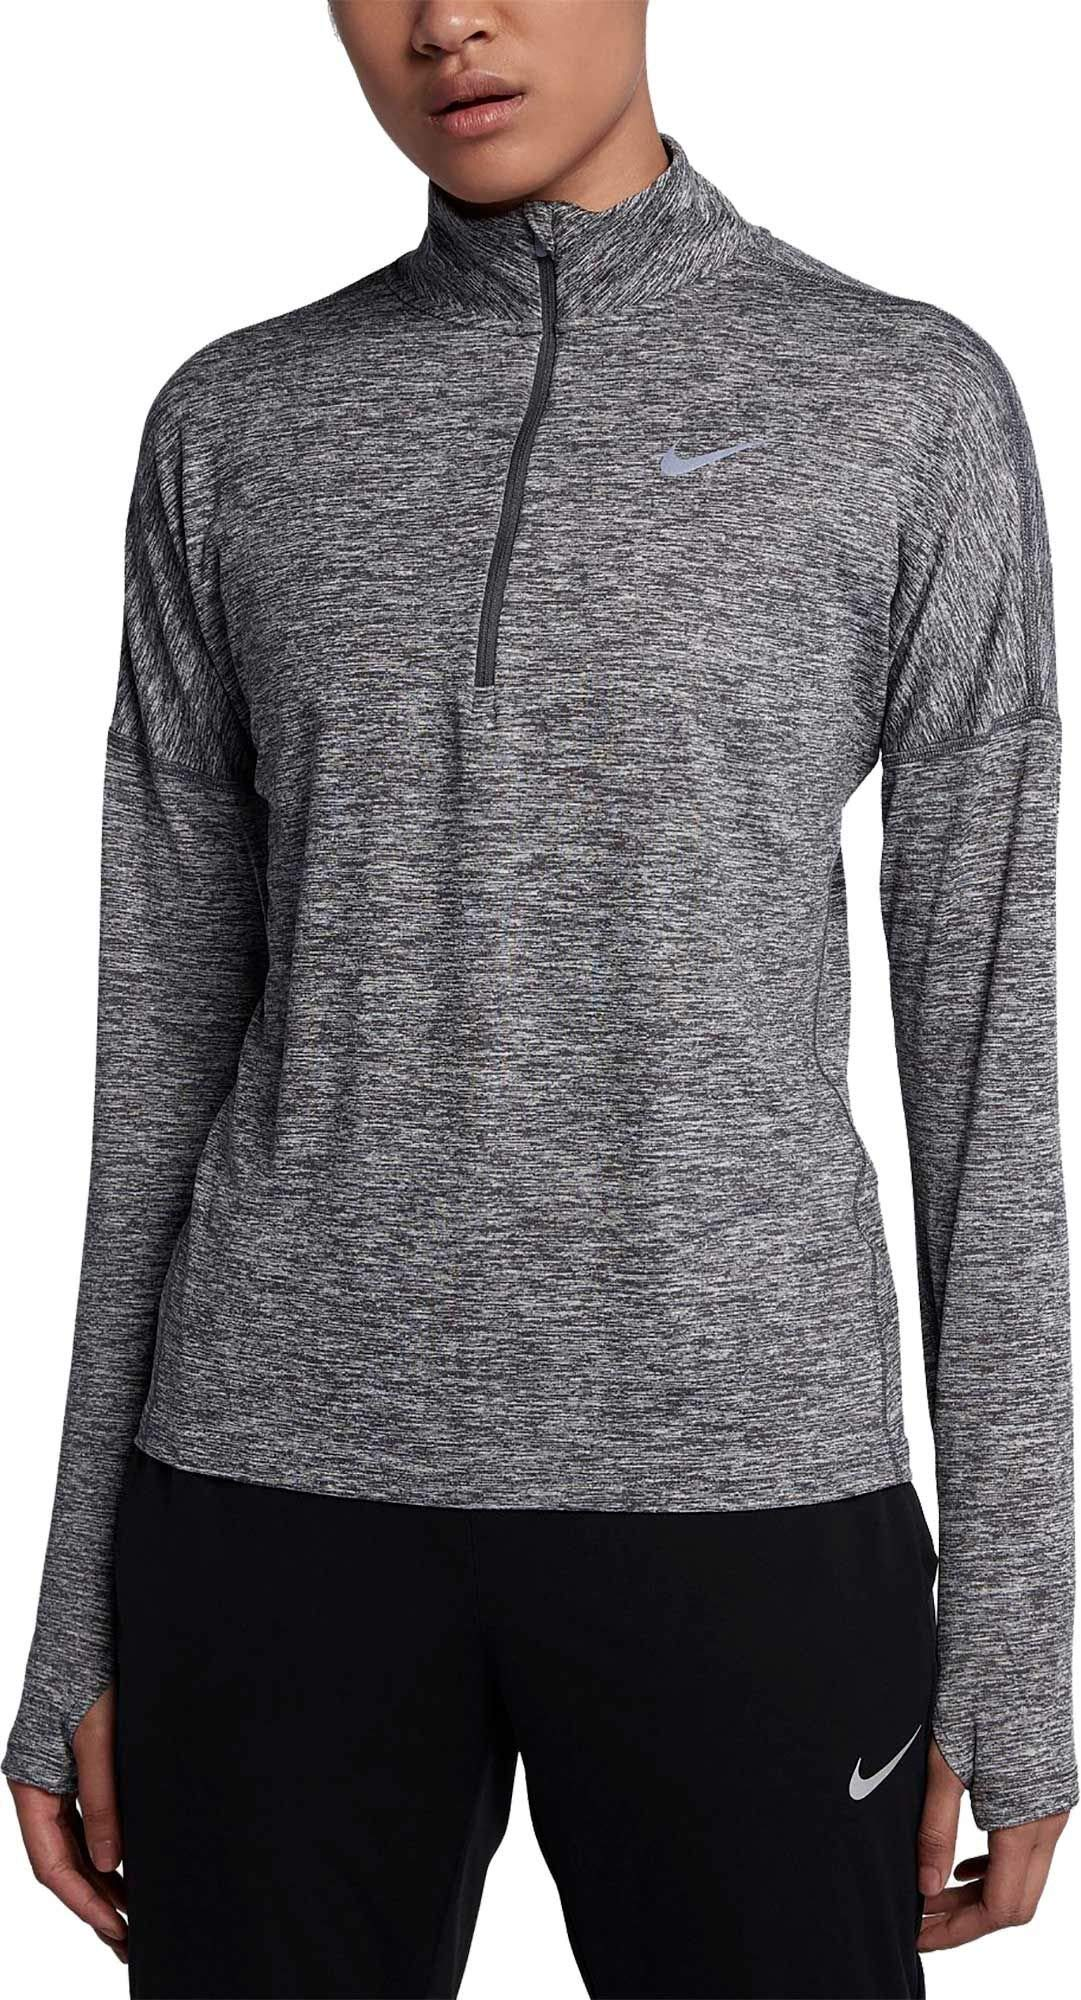 Nike Women's Dry Element Half Zip Top (X-Small, Dark Grey/HTR) by Nike (Image #1)